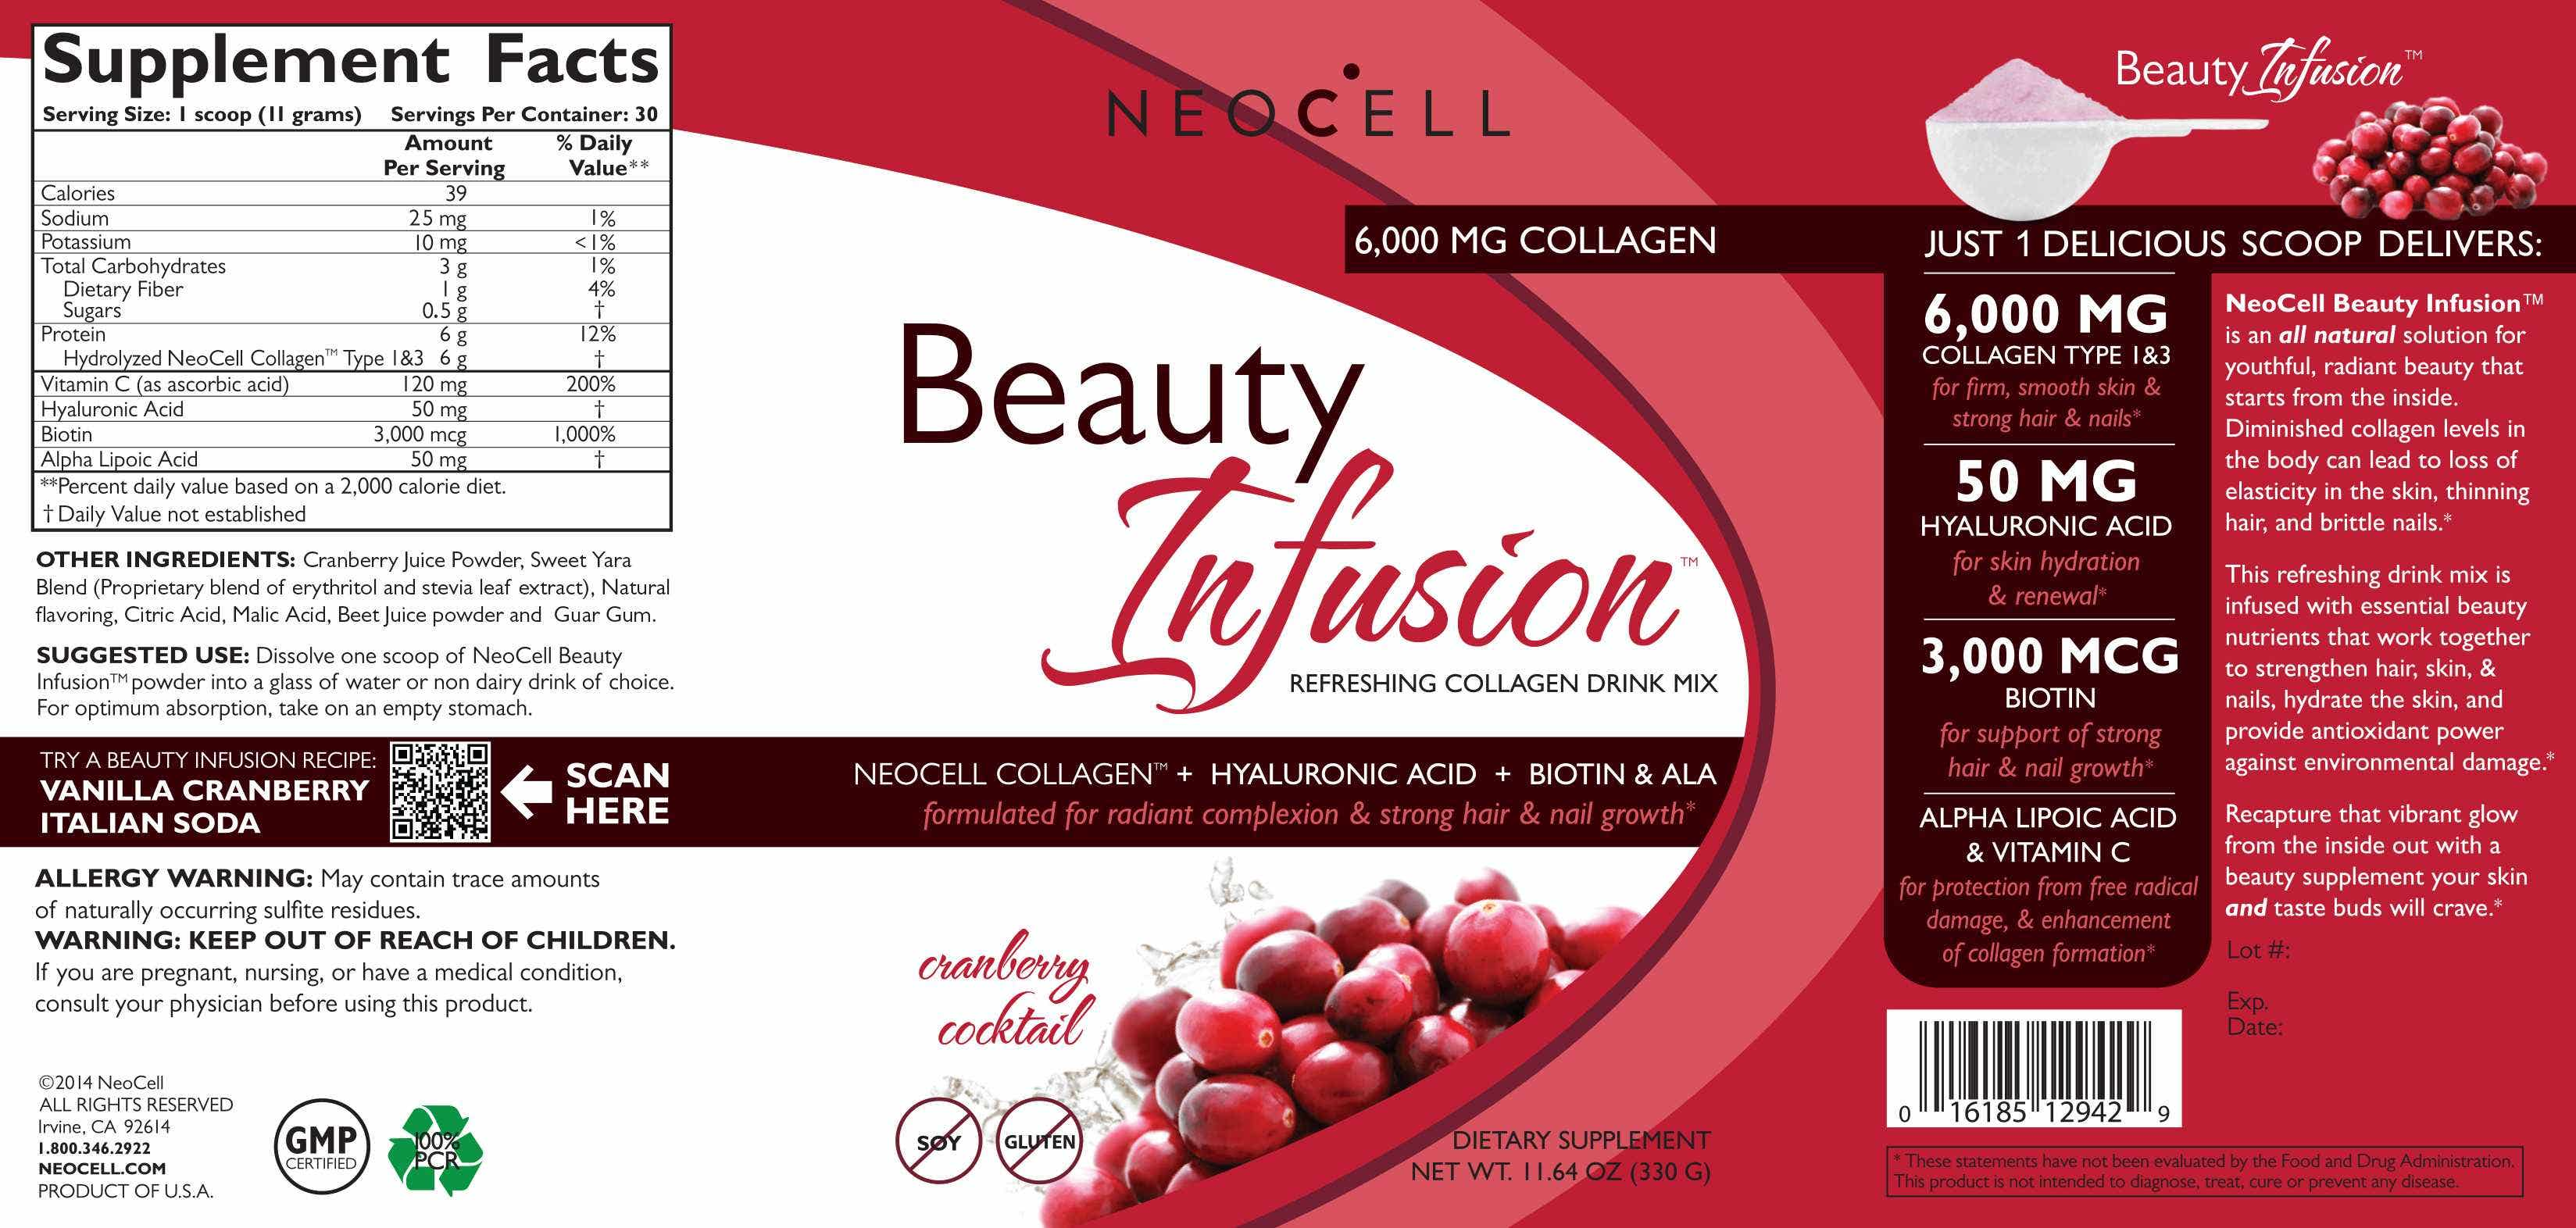 Neocell Laboratories Collagen Drink Mix - Beauty Infusion - Cranberry Splash - 11.64 Oz Daily Essential Moisturizer with Jojoba and Aloe Vera - 4 oz. by Desert Essence (pack of 12)